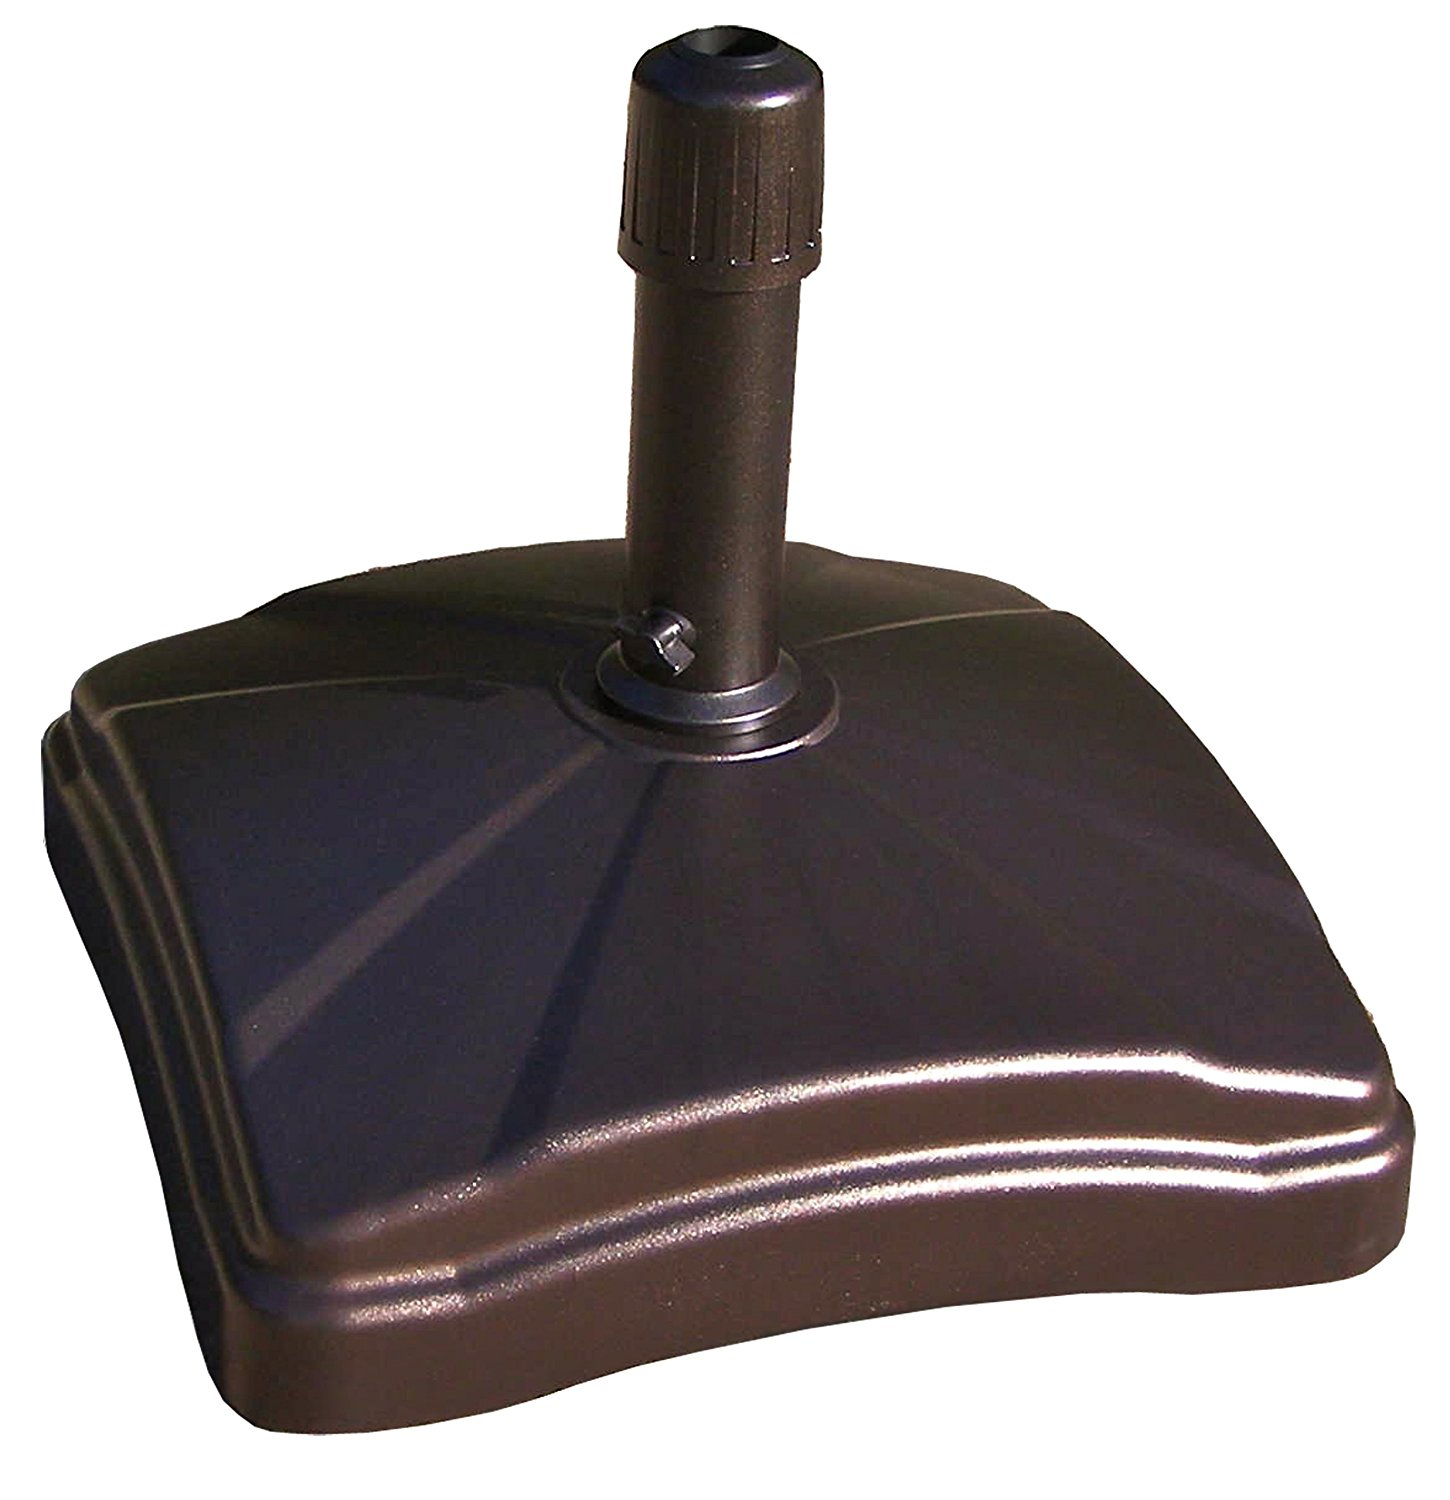 Shademobile Rolling Umbrella Base, Black